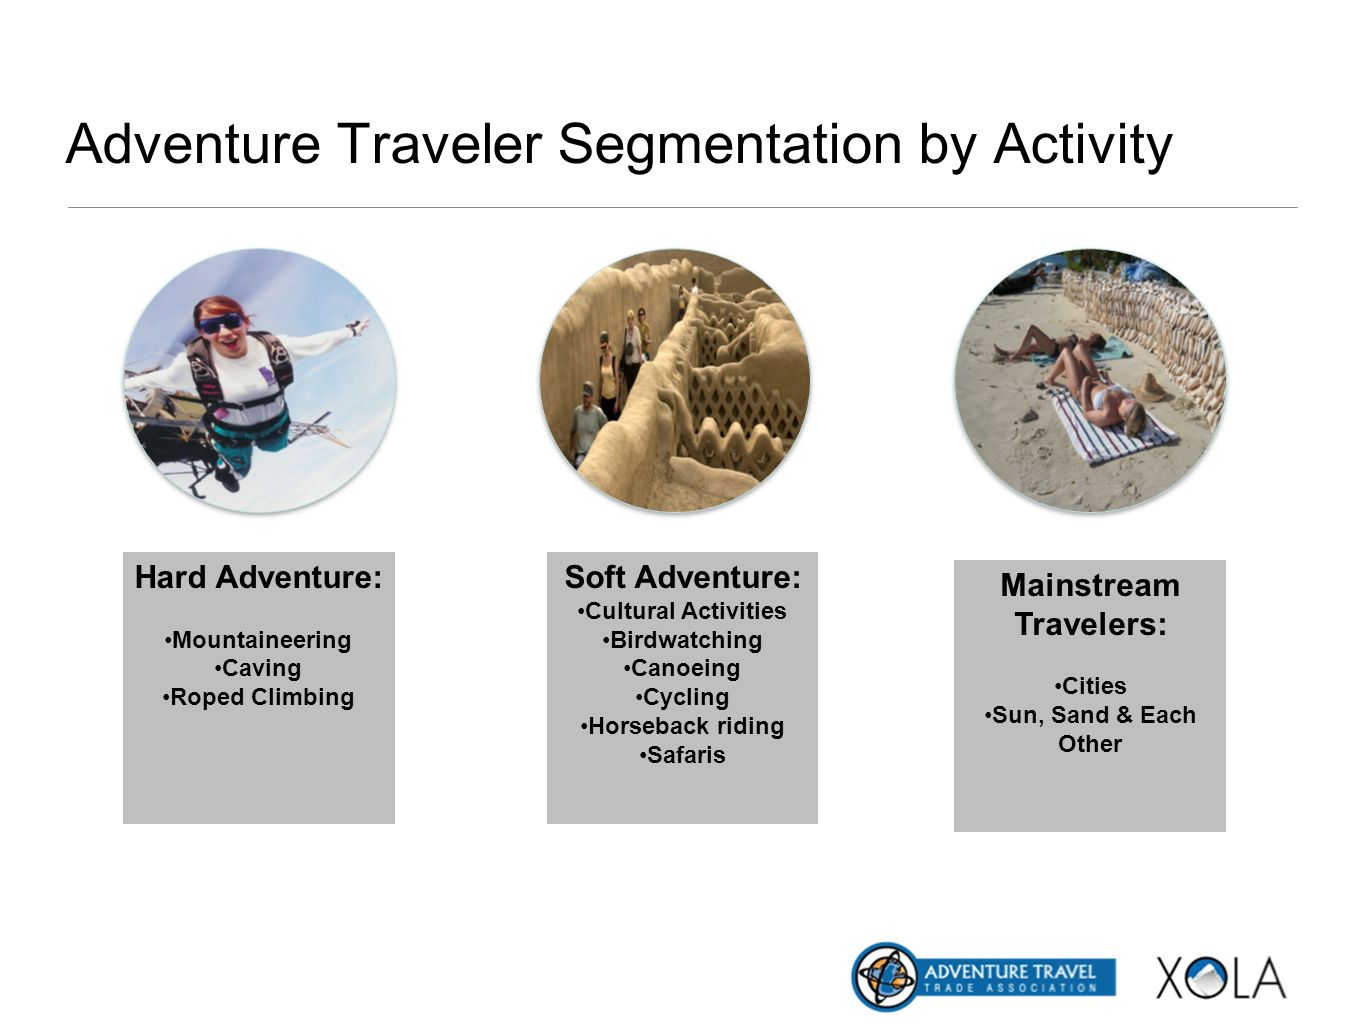 Adventure Traveler Segmentation by Activity